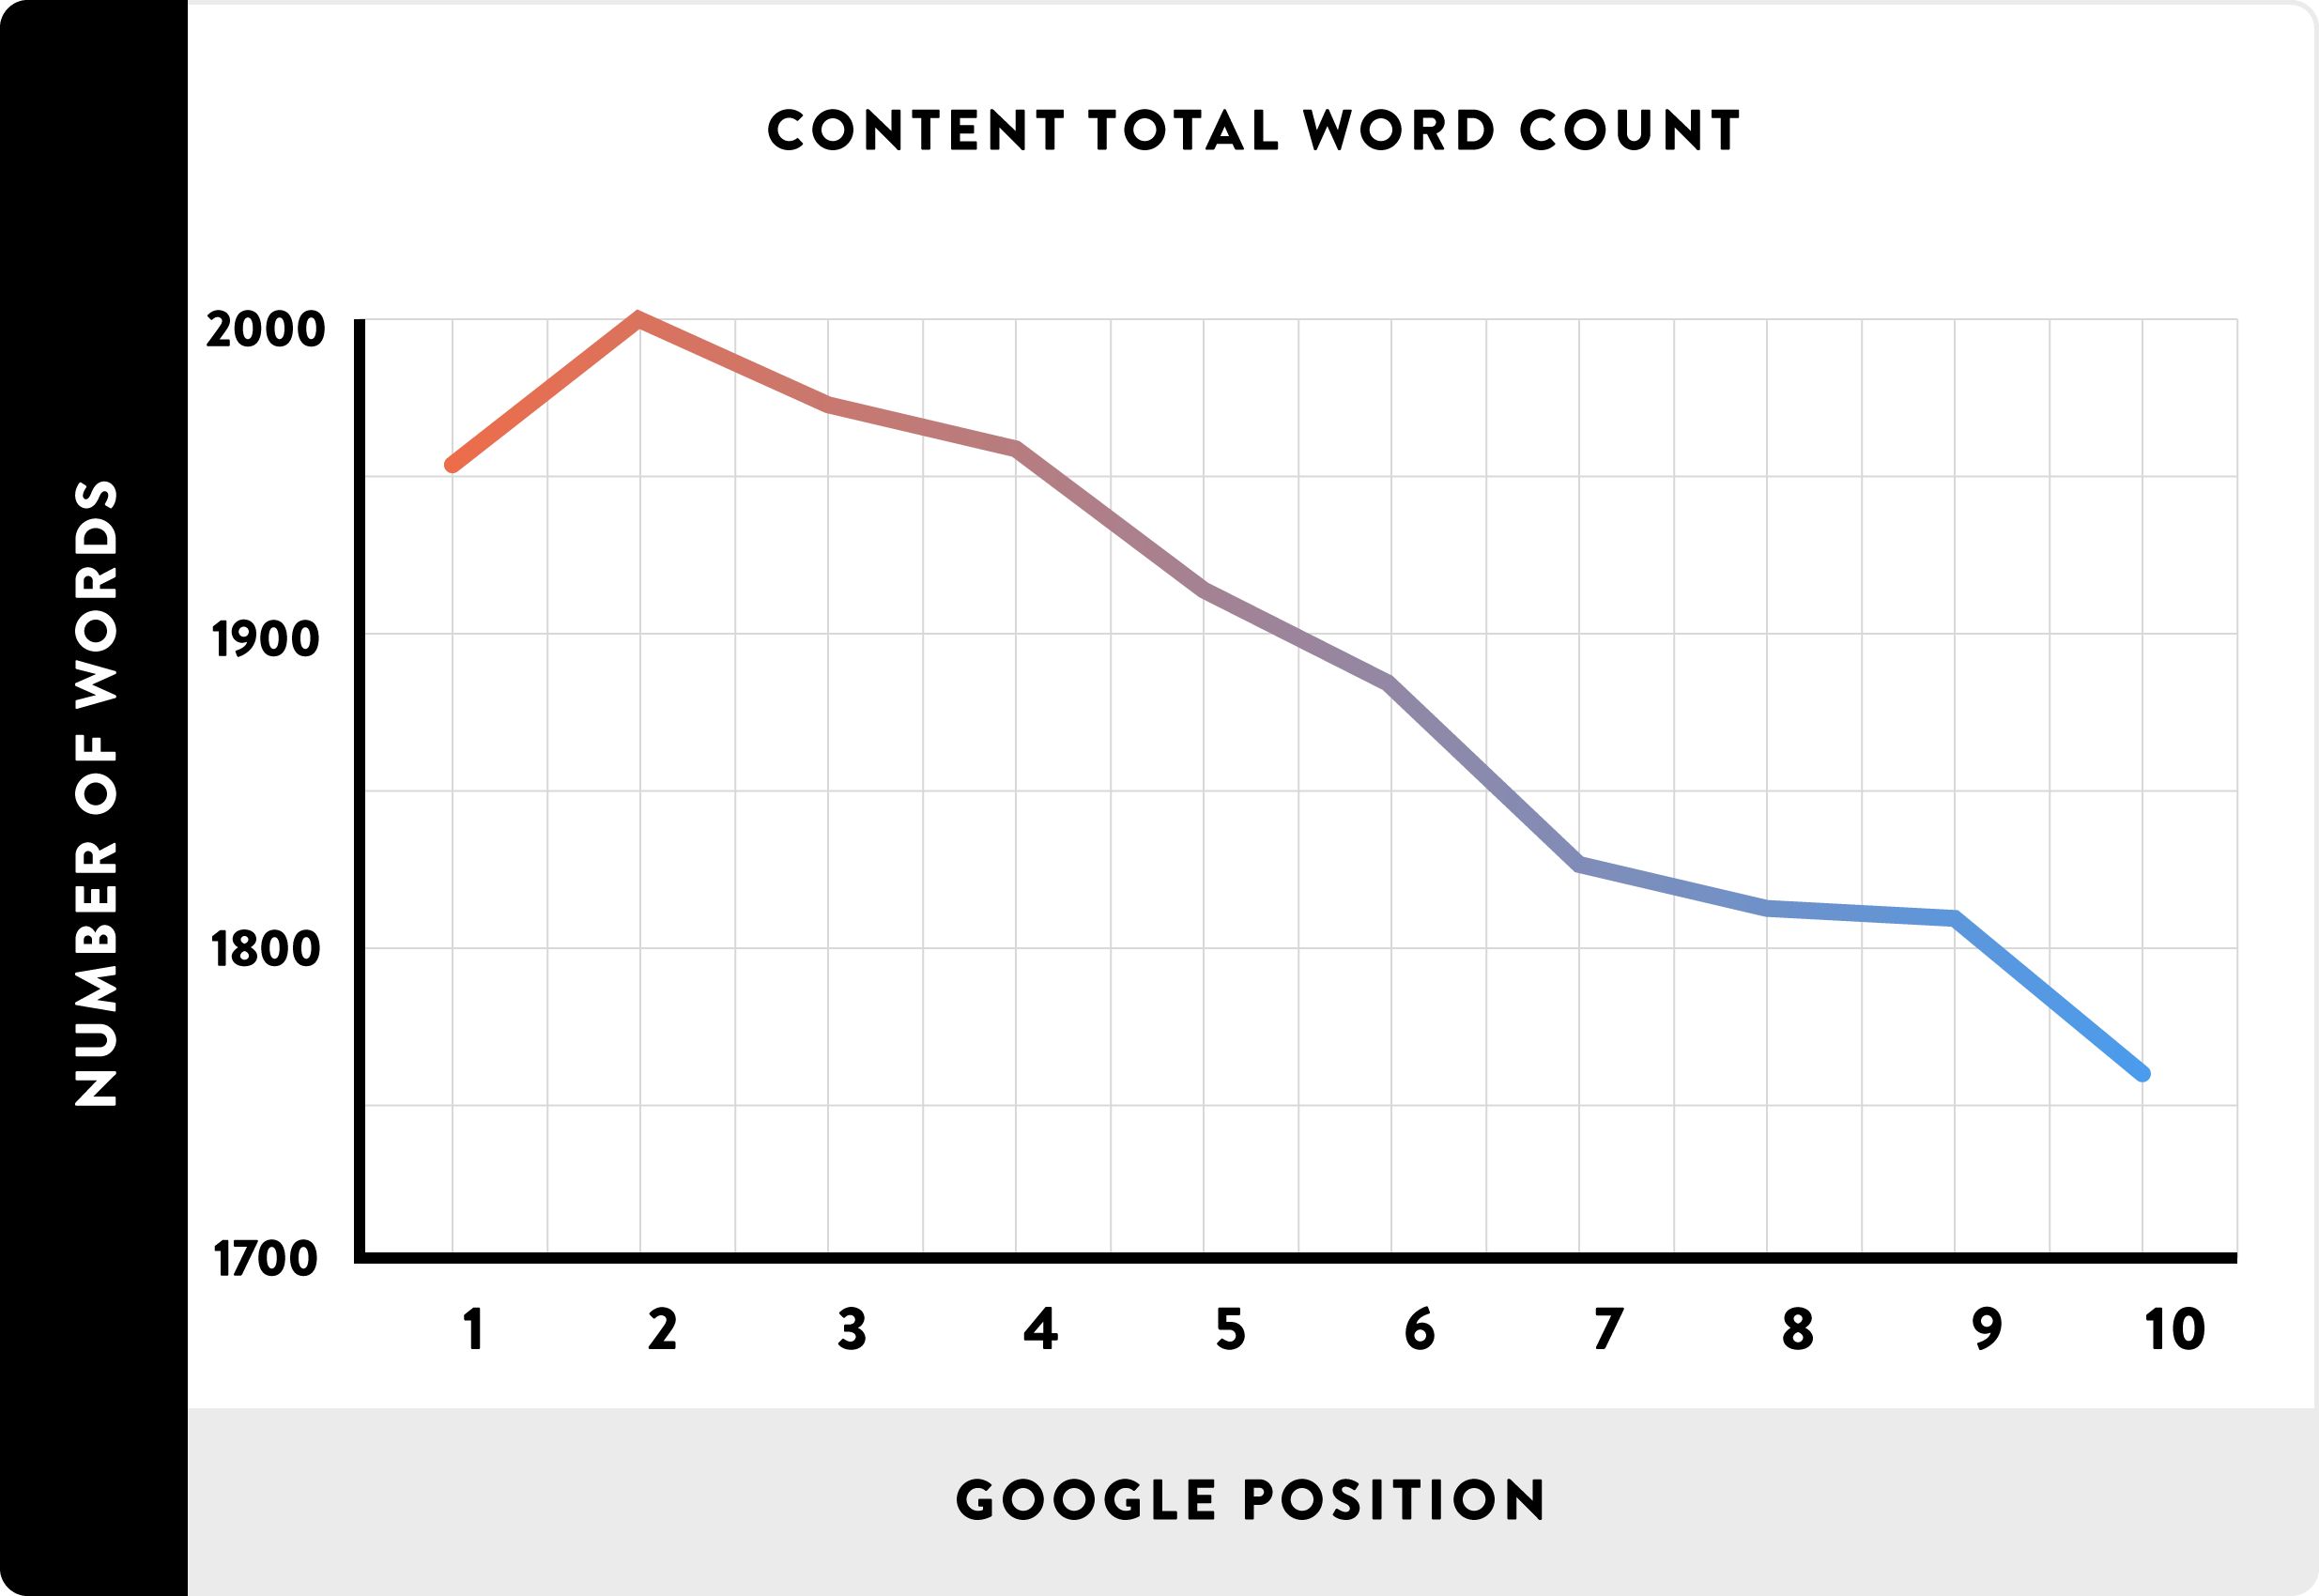 A screenshot from Brain's blog on 200 factors Google takes into account for ranking. The graph shows a correlation between number of words and Google ranking.